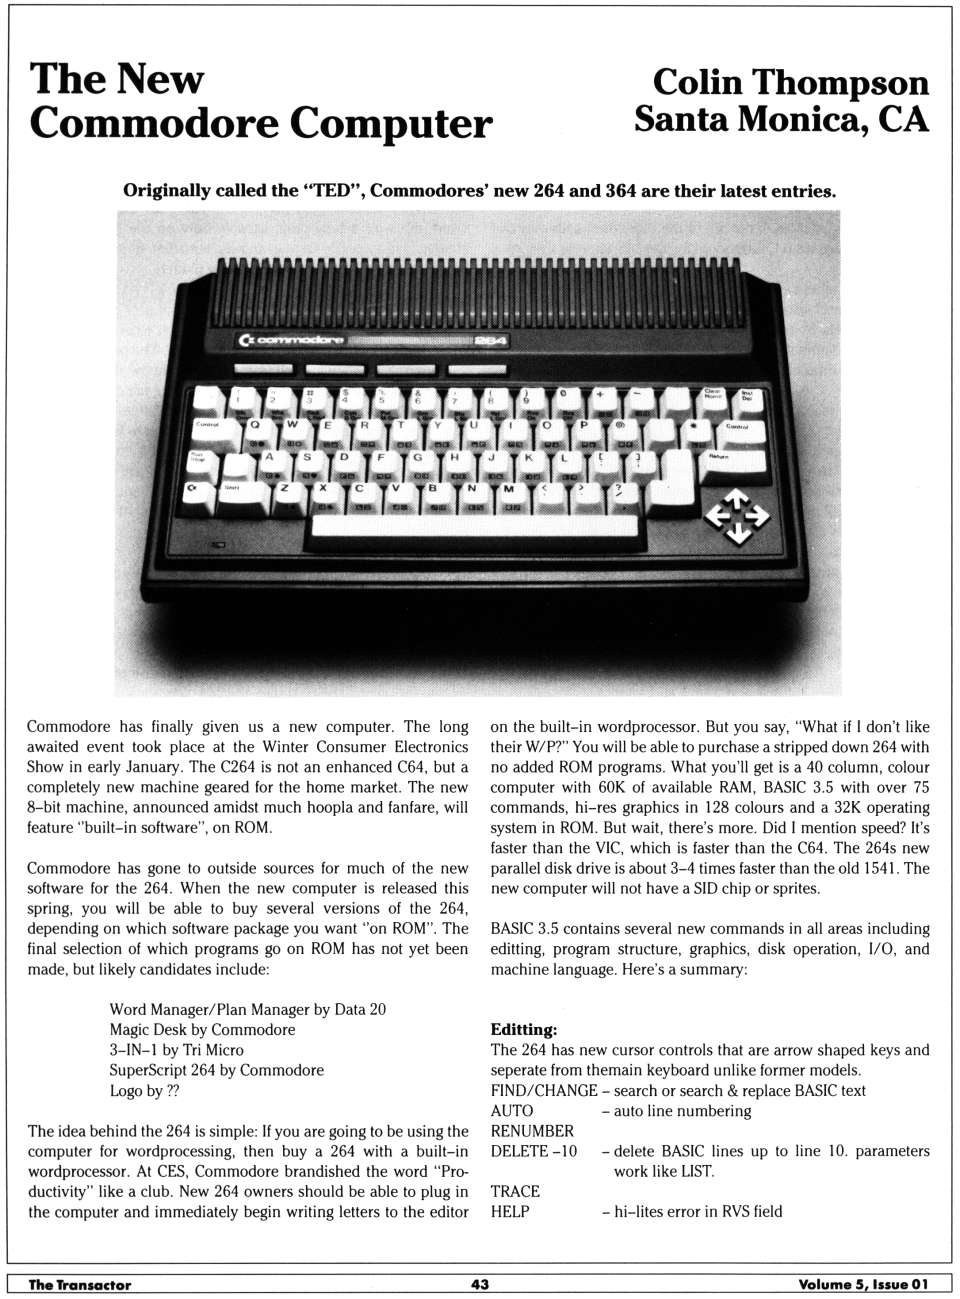 "[The New Commodore Computer: Originally called the ""TED"", Commodore's new 264 and 364 are their latest entries (1/2)]"